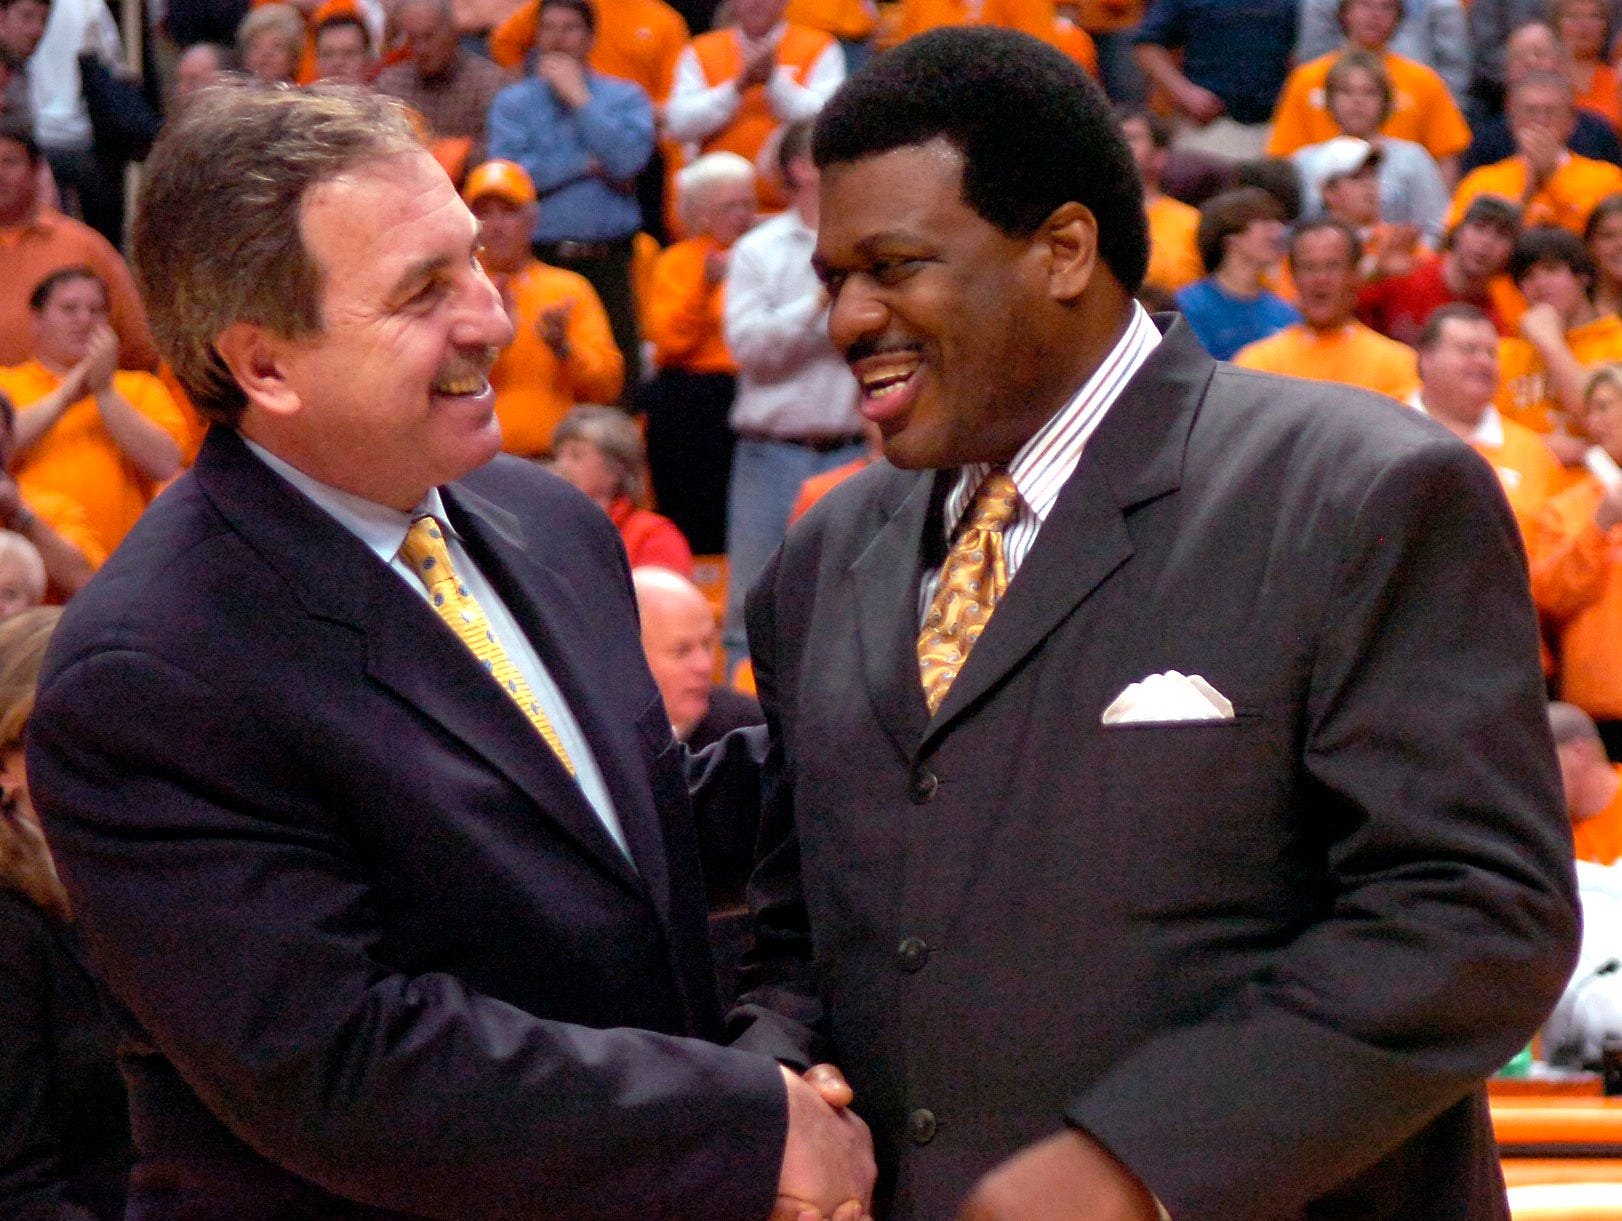 Former UT basketball great Bernard King (right) shakes hands with former teammate Ernie Grunfeld as he is recognized during the Kentucky game. King's #53 jersey was retired at halftime of the game.